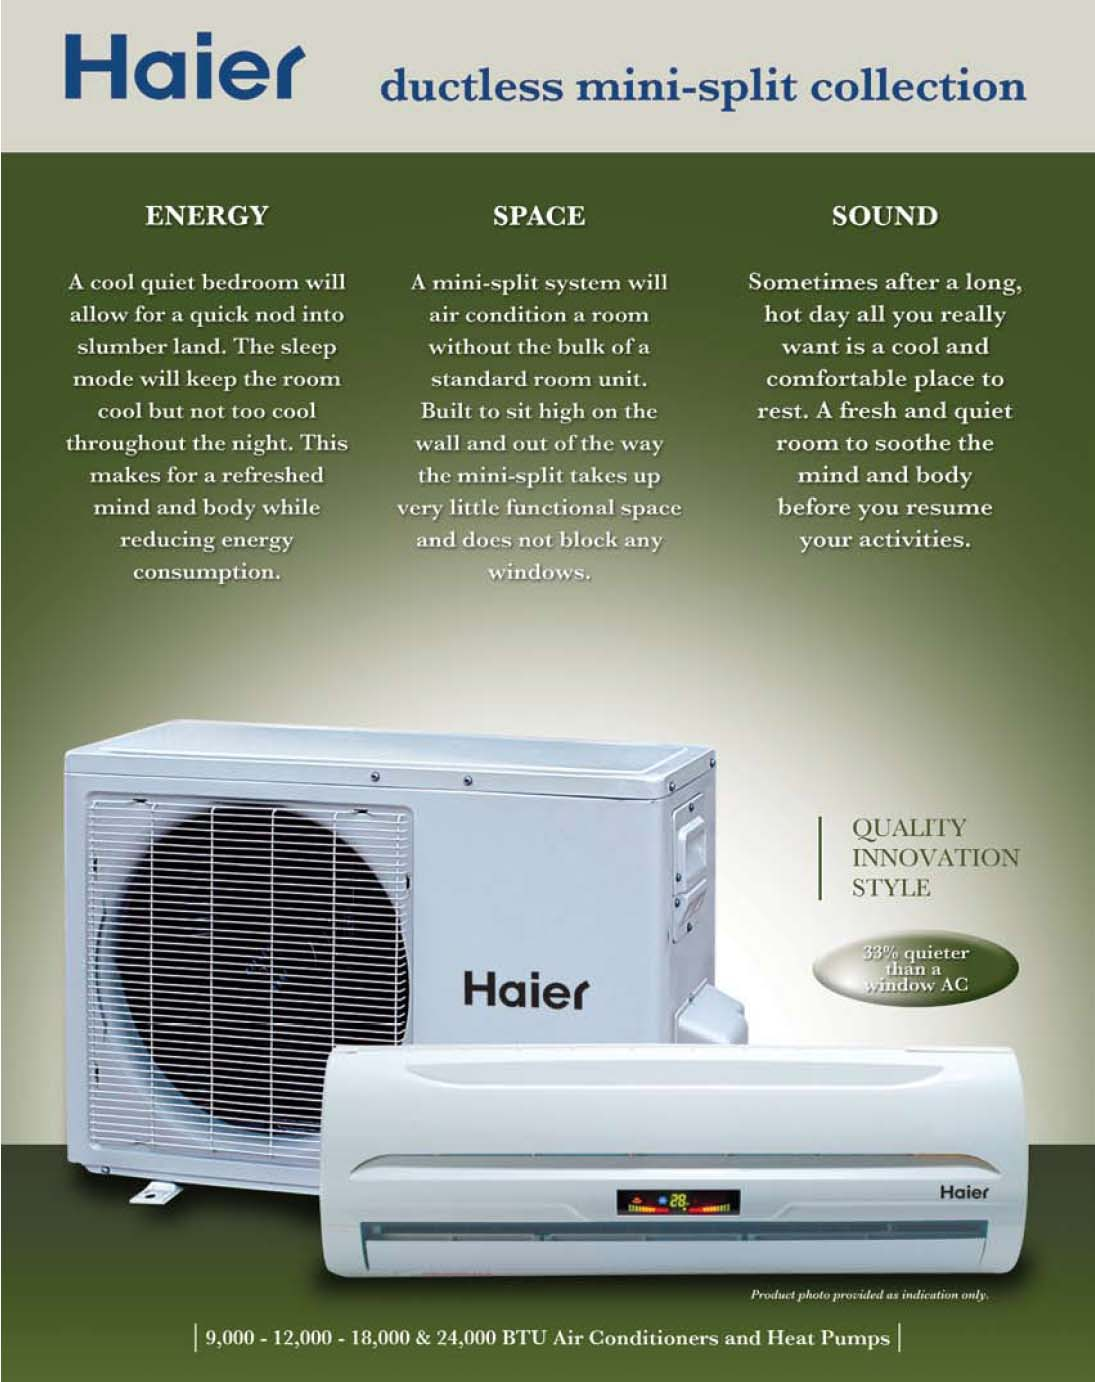 Ductless Single Zone mini split air conditioner systems with Heat Pump #2D4868